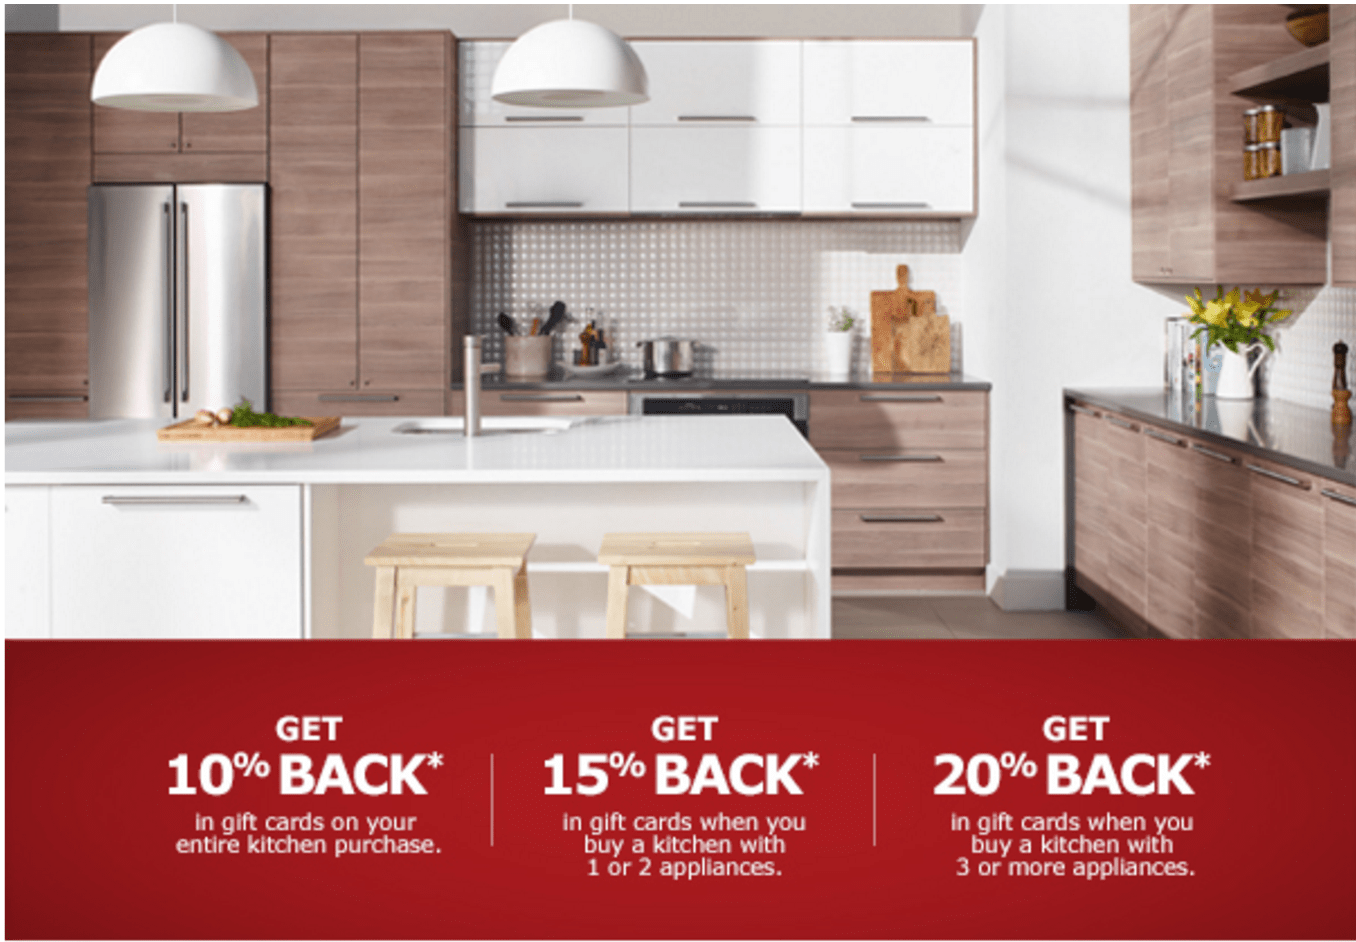 ikea kitchen island canada compact appliances for small kitchens sale 2016 rumors from your spy in the field